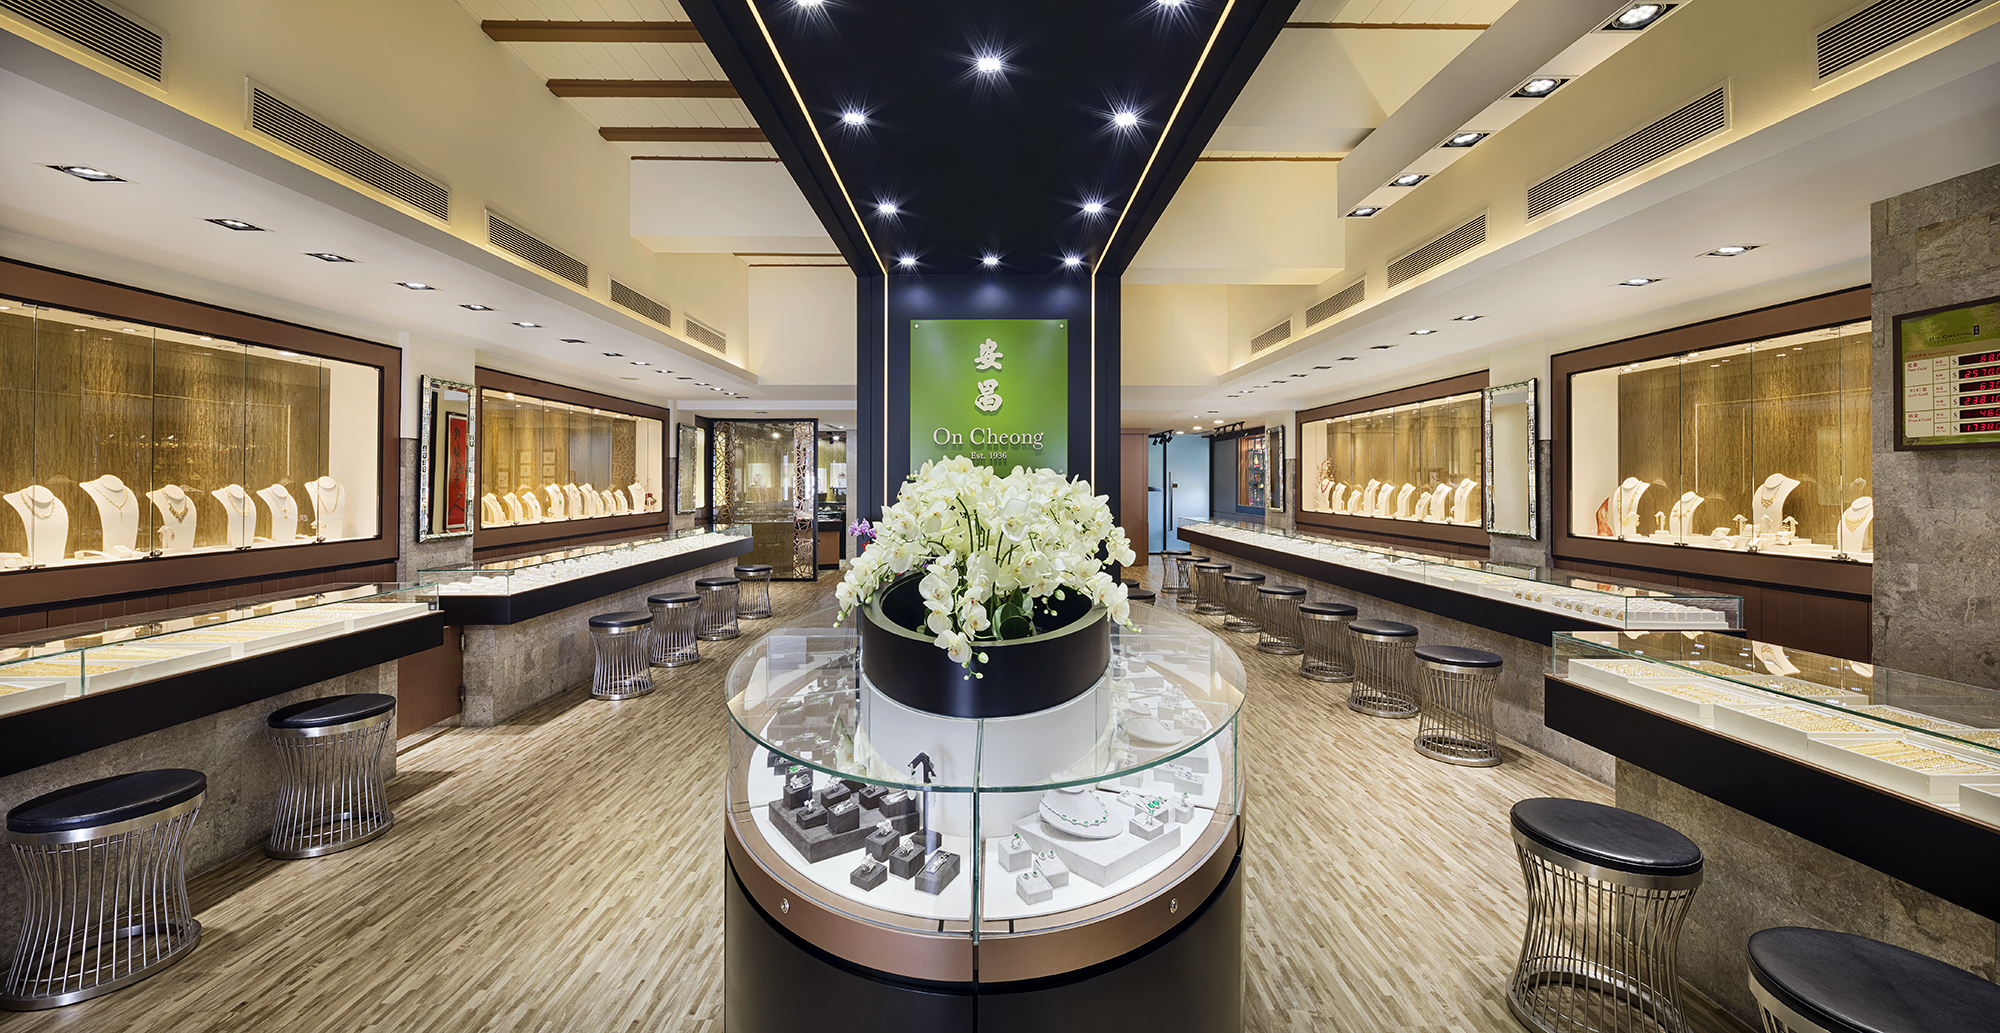 On Cheong Jewellery rebrands for the future - Prestige Online - Singapore